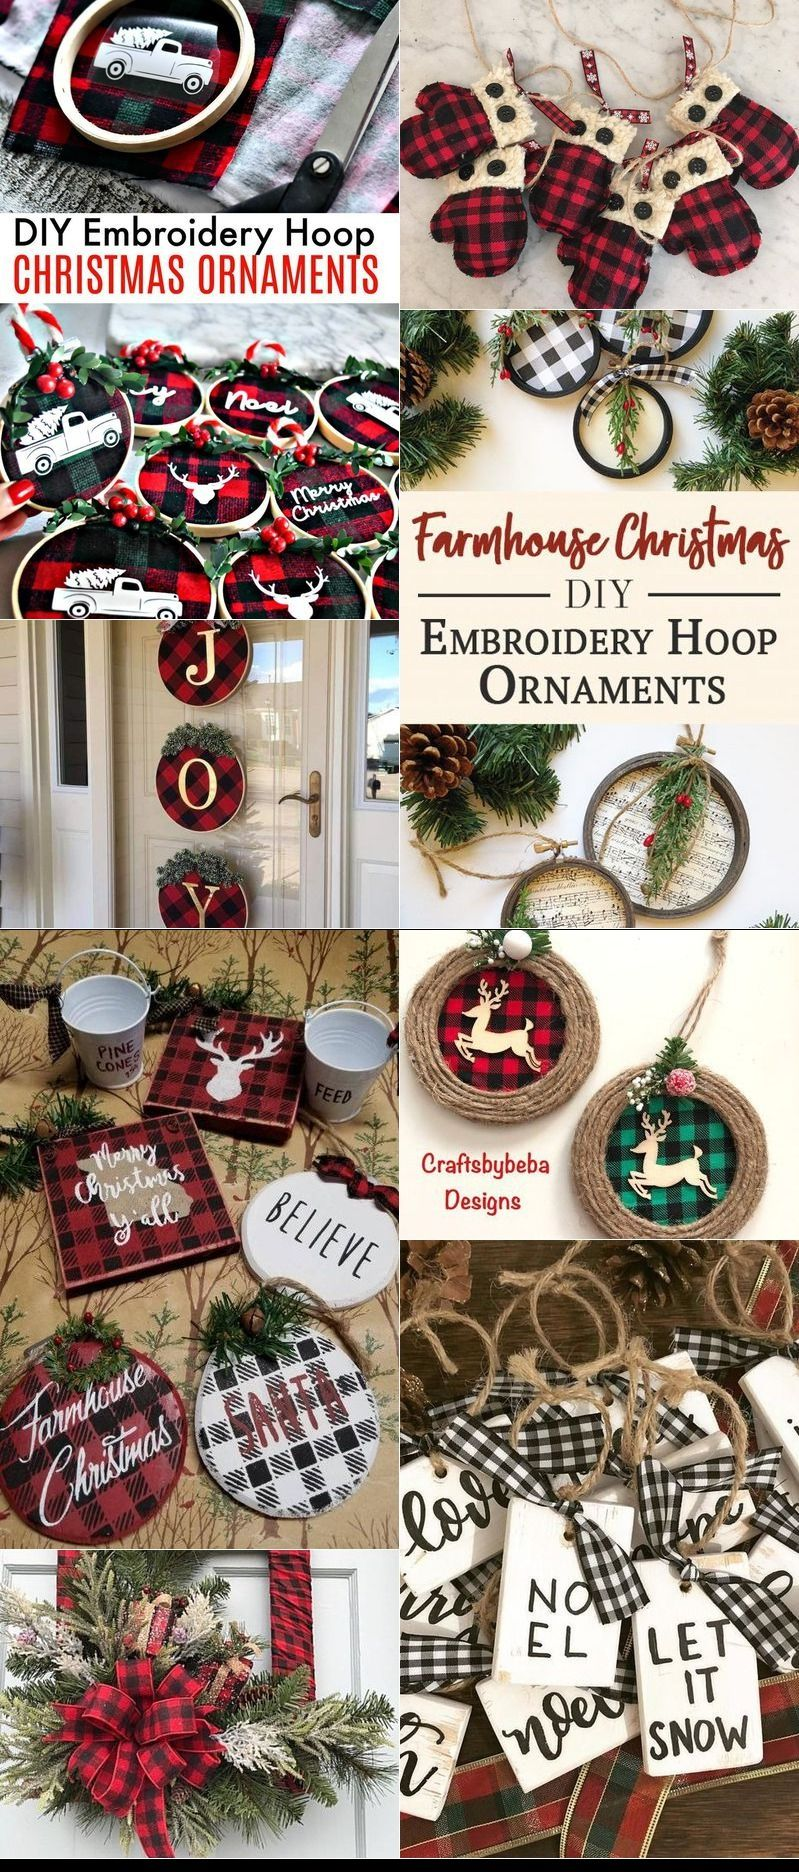 Diy Embroidery Hoop Christmas Ornaments With Images Machine Embroidery Christmas Ornaments Machine Embroidery Christmas Christmas Wreaths Diy